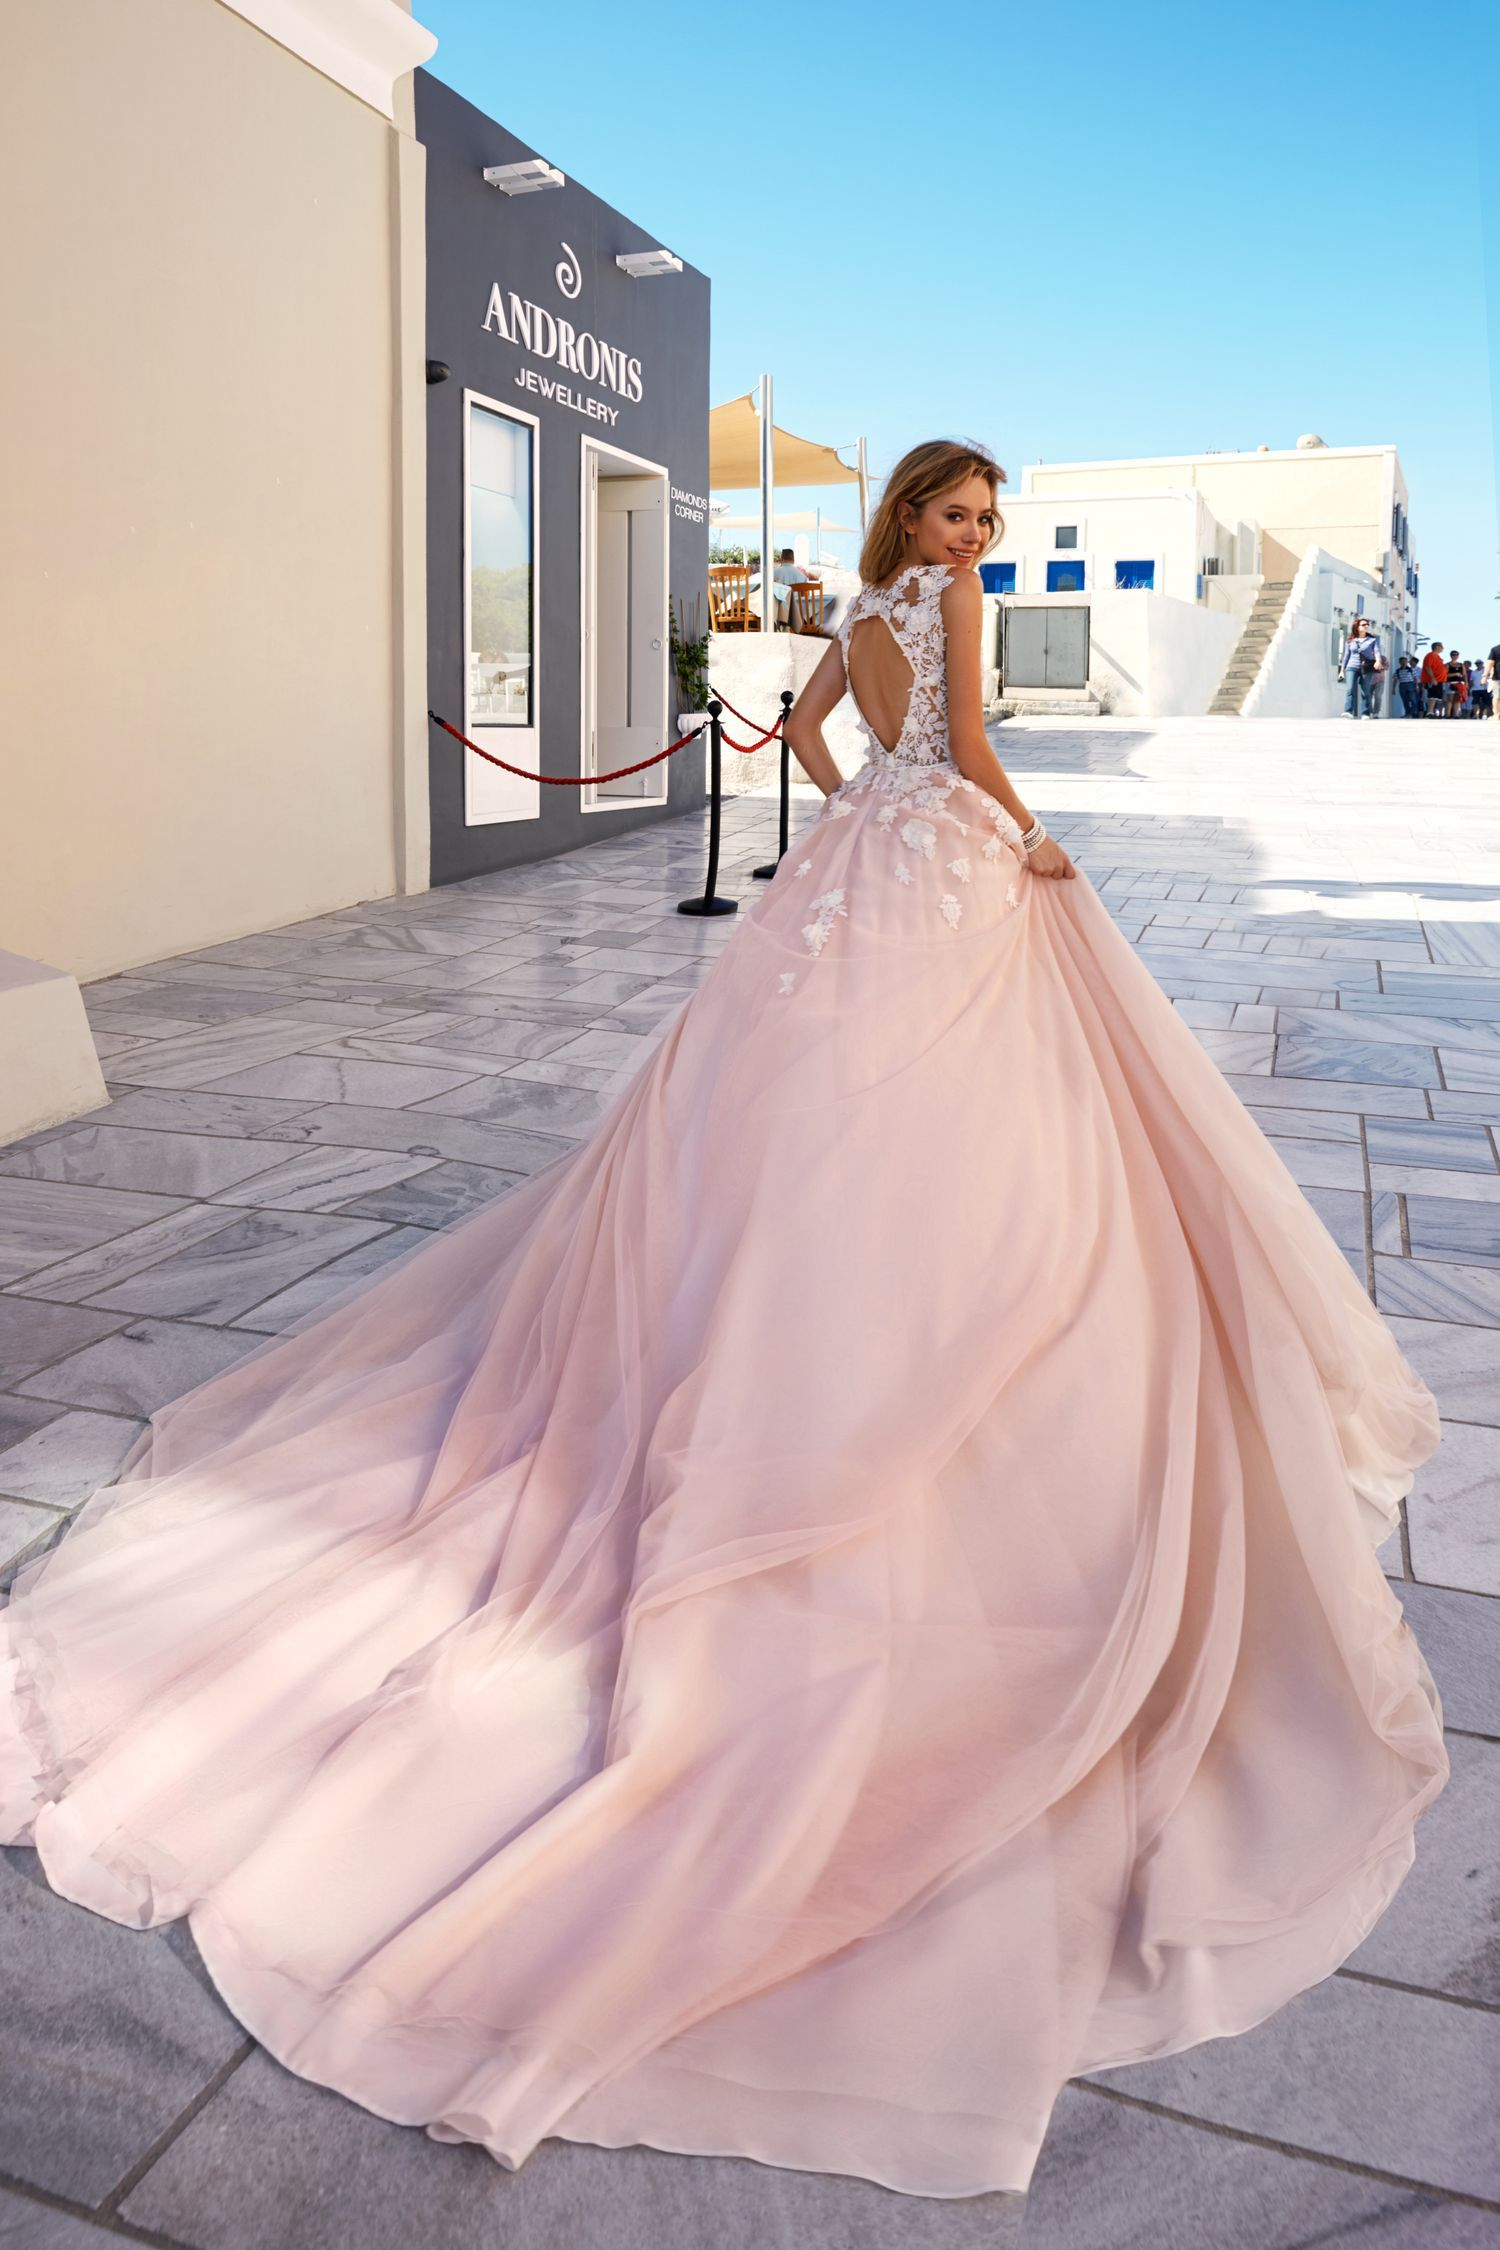 Britany with such a unique color that gives a sweet image | Gowns ...